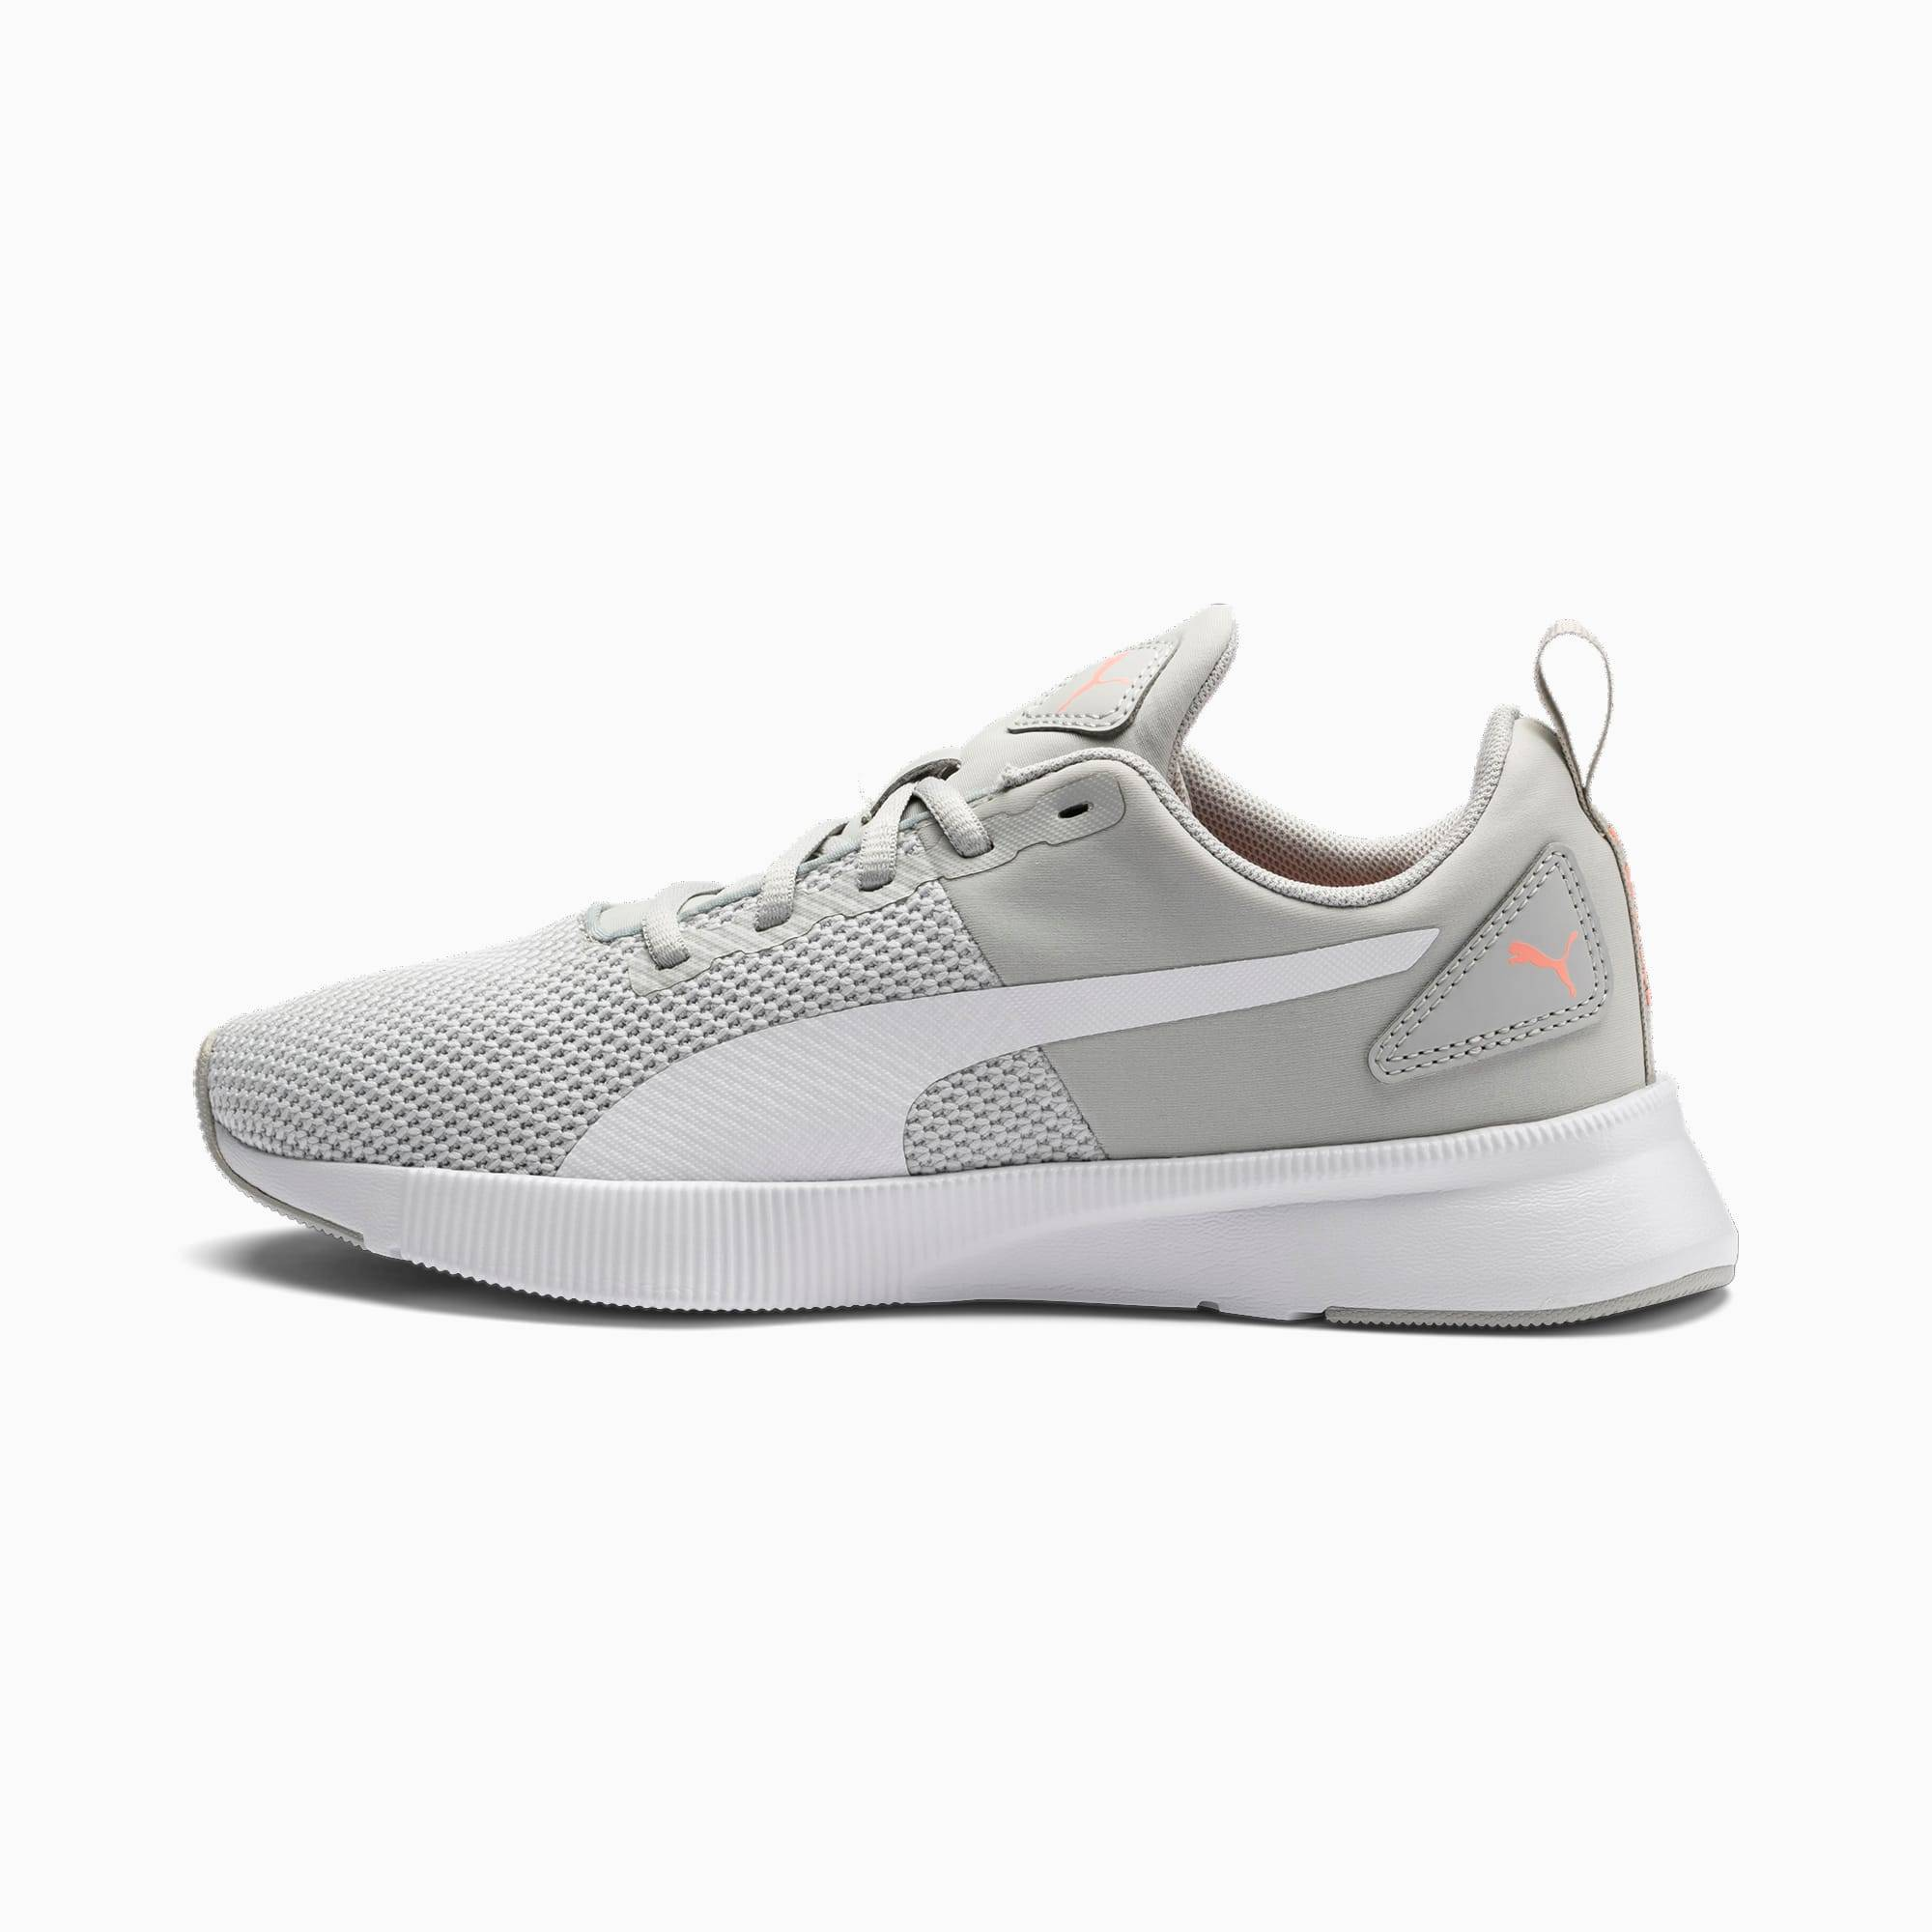 PUMA Chaussure de course Flyer Runner, Blanc/Rose/Gris, Taille 40.5, Chaussures